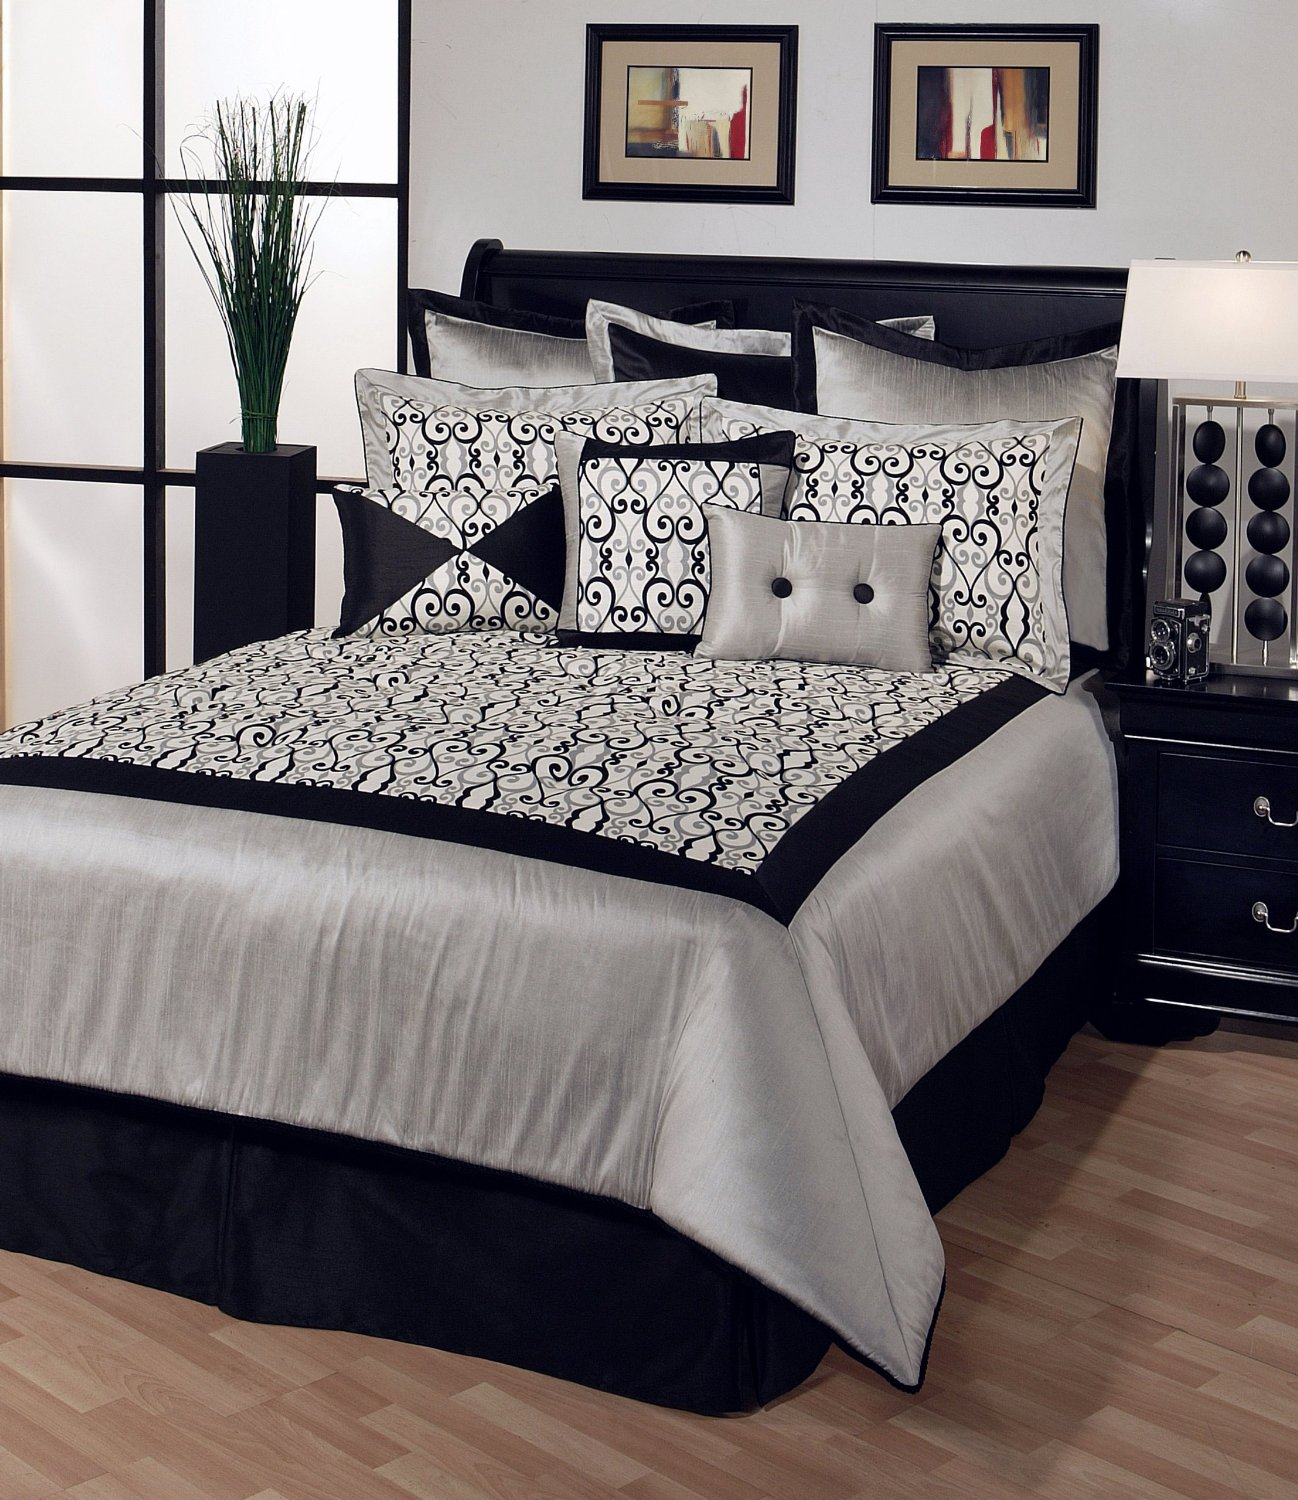 Bricolage e decora o decorar um quarto de casal em preto for Black white and gray bedroom ideas